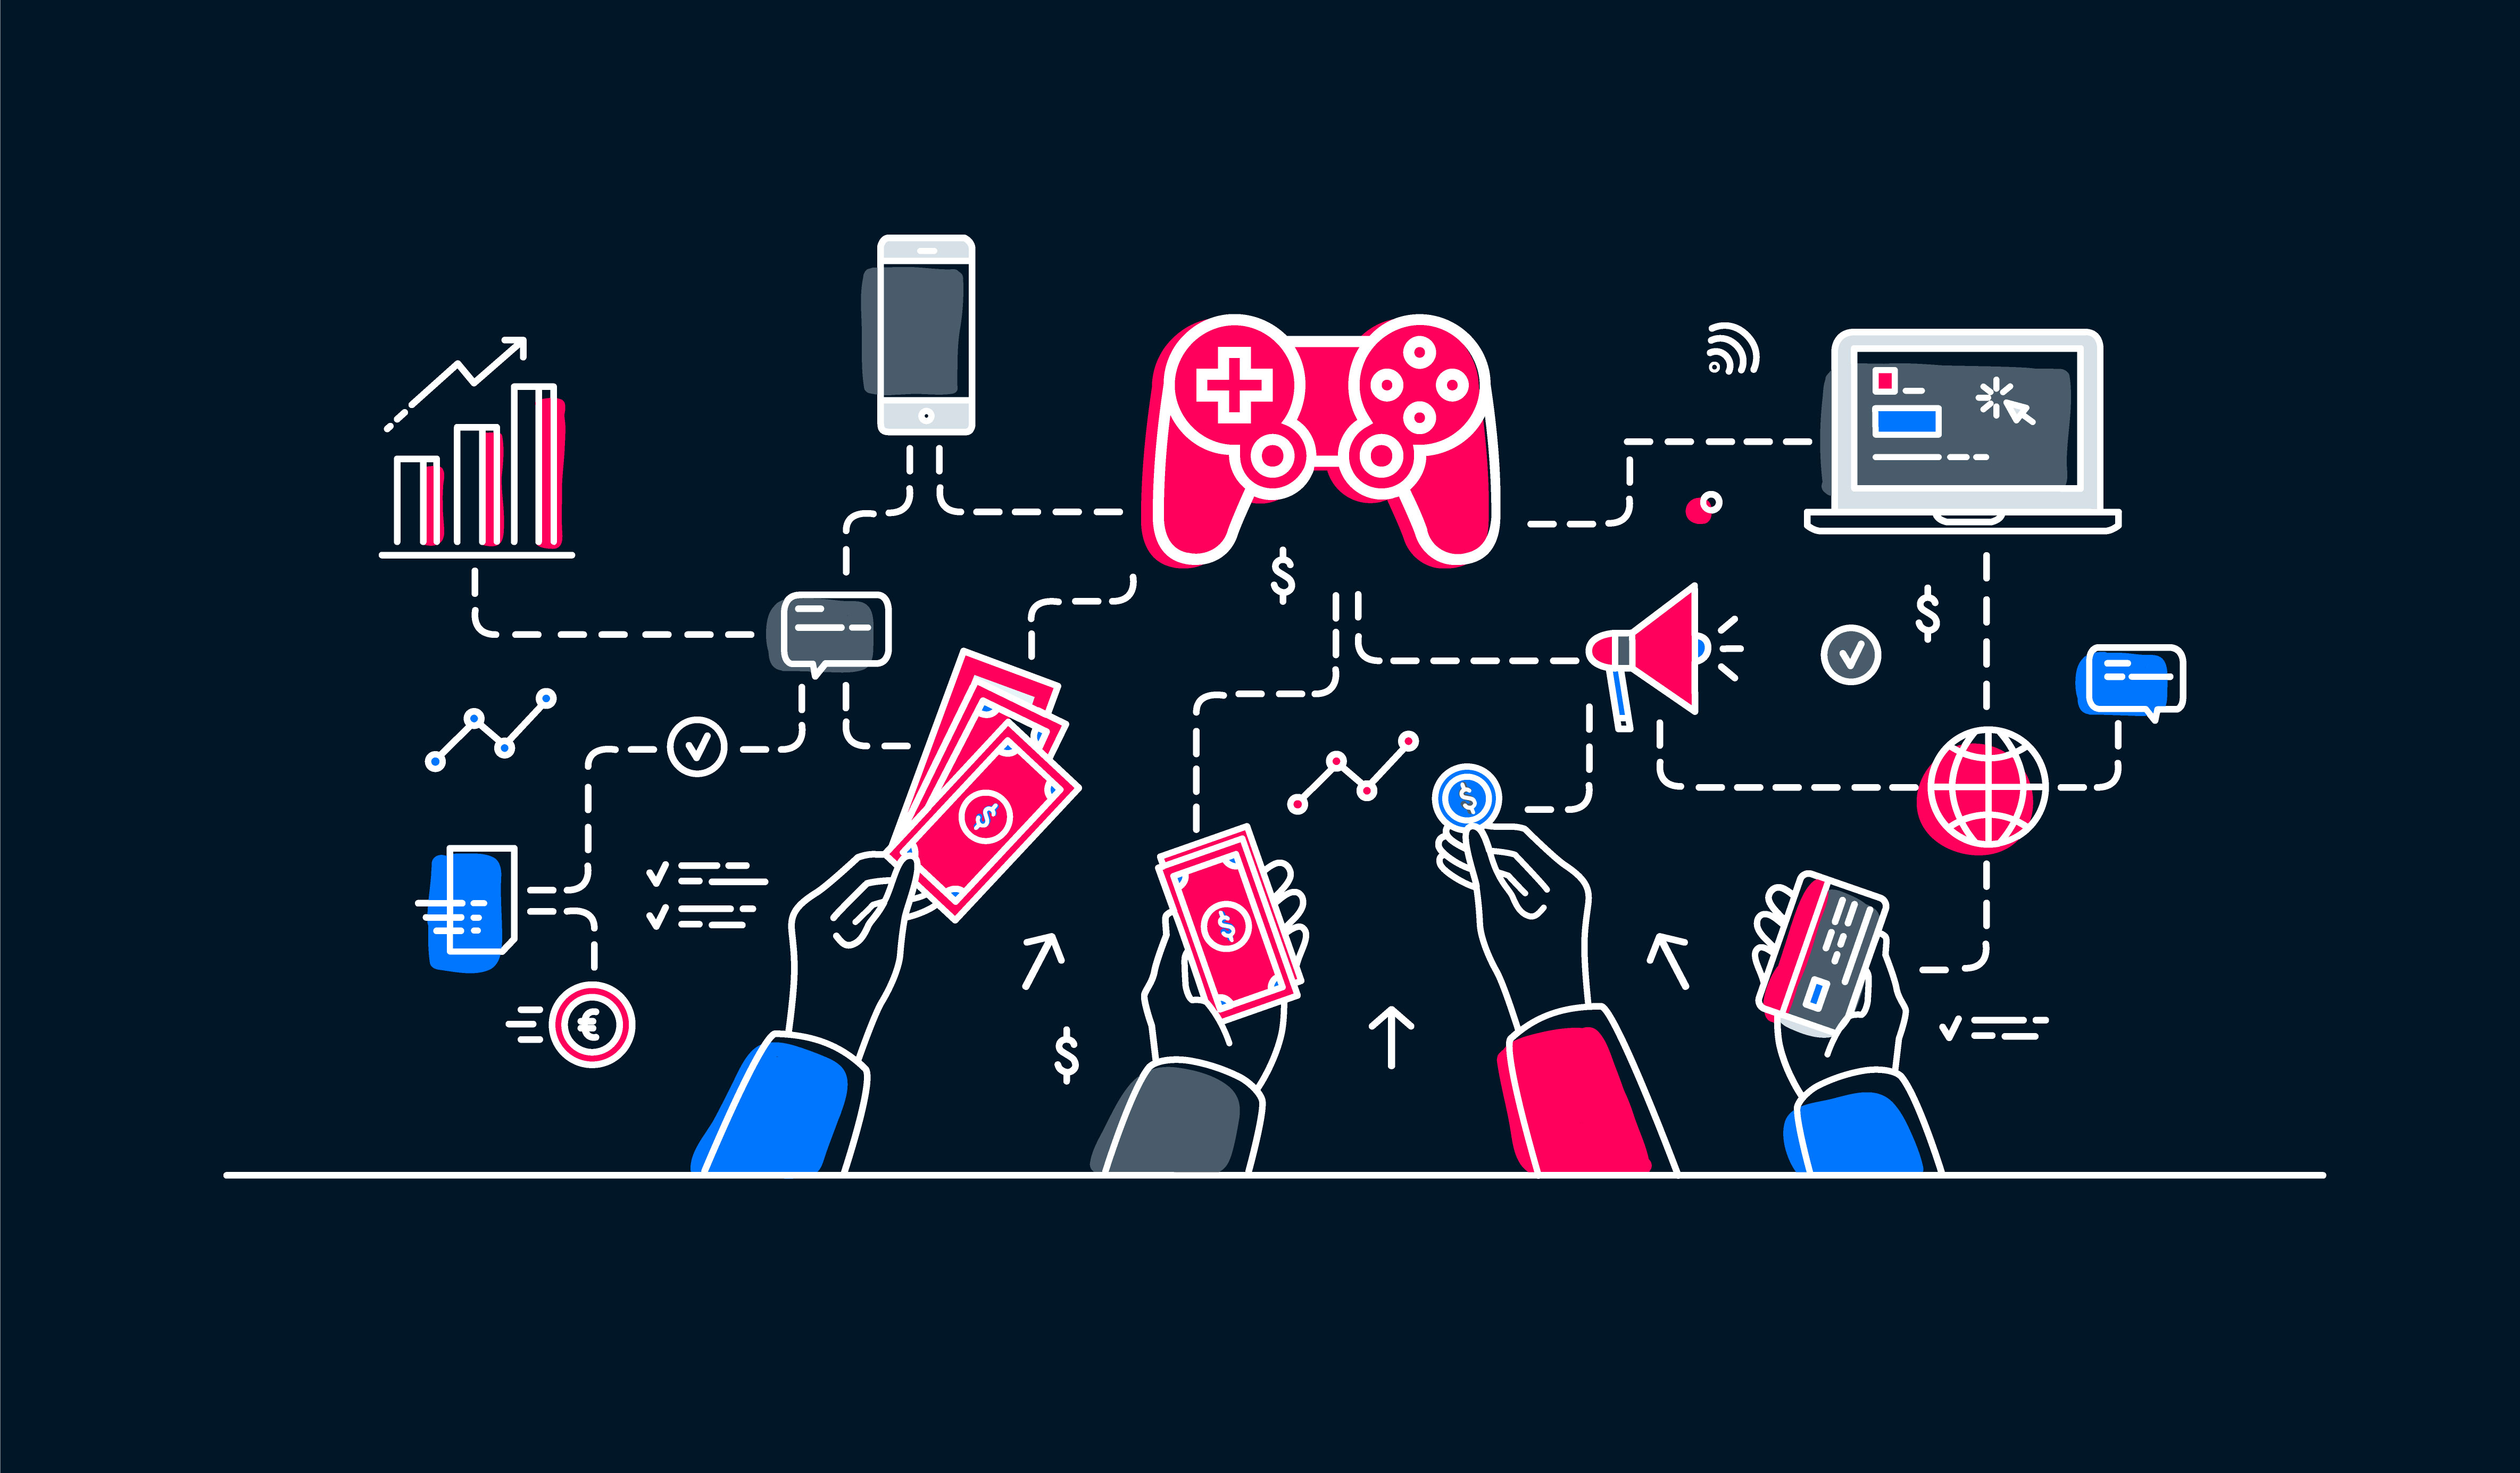 HOW TO SUCCESSFULLY CROWDFUND YOUR VIDEO GAME